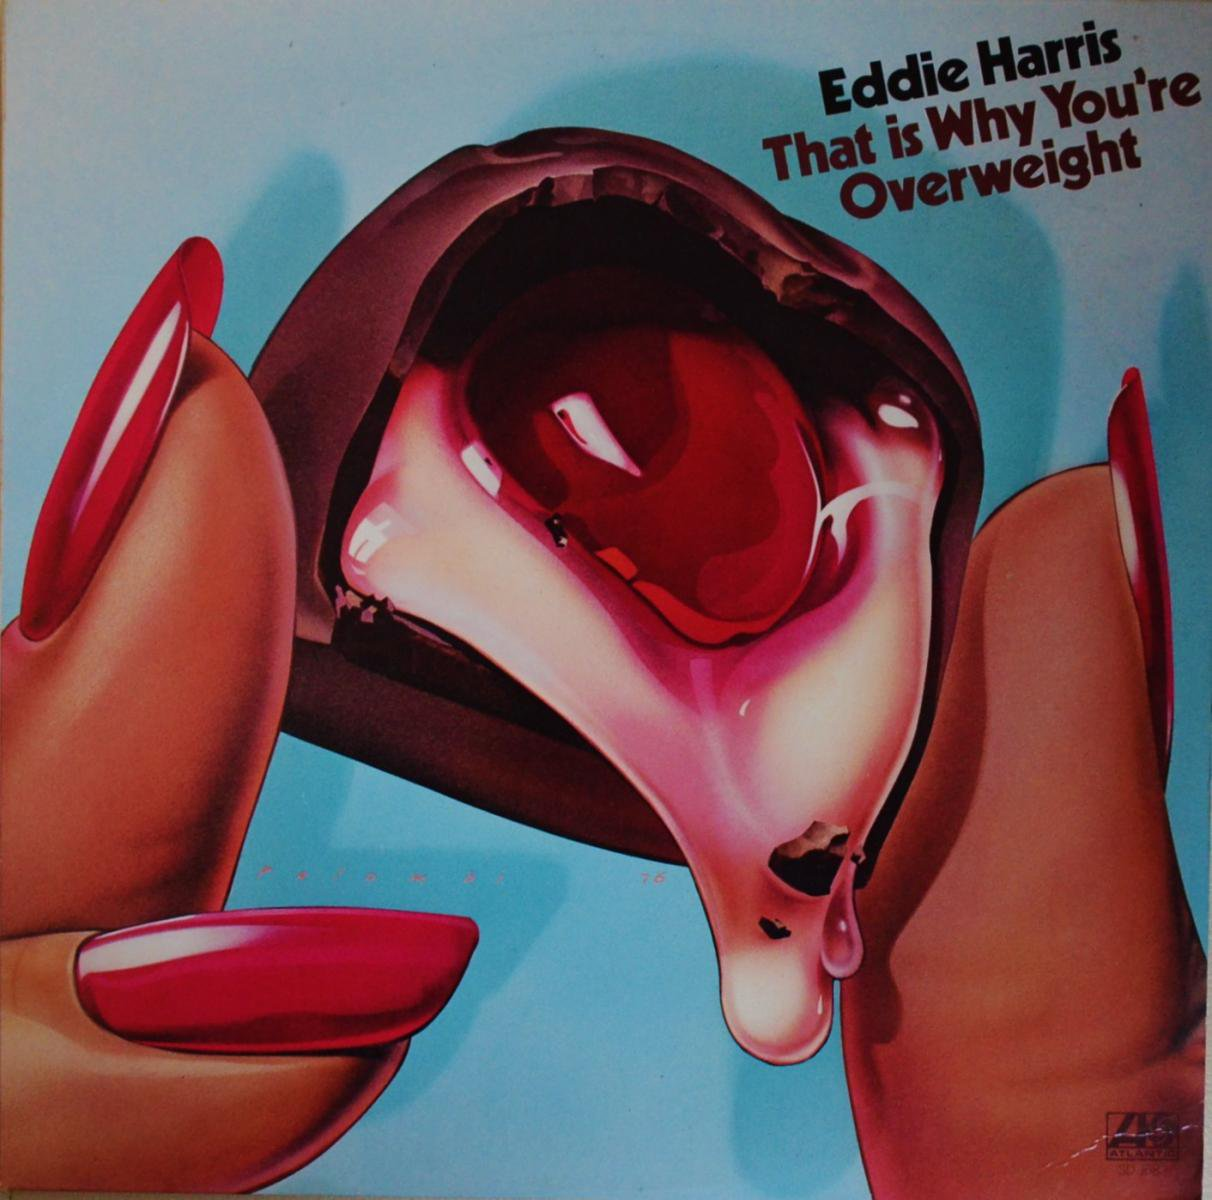 EDDIE HARRIS / THAT IS WHY YOU'RE OVERWEIGHT (LP)